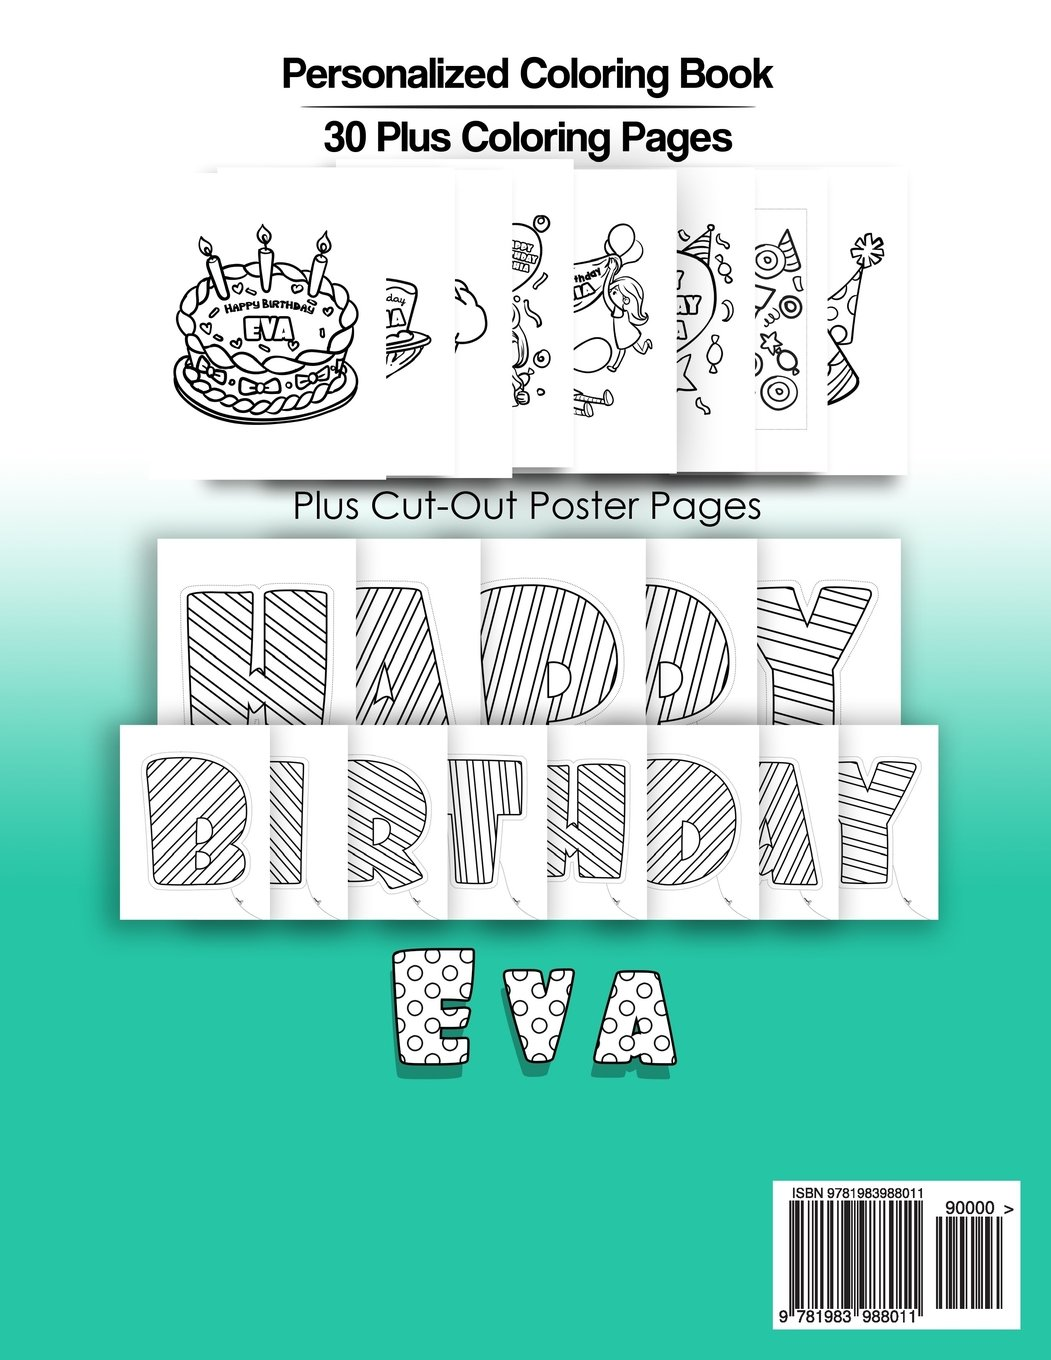 Eva\'s Birthday Coloring Book Kids Personalized Books: A Coloring ...